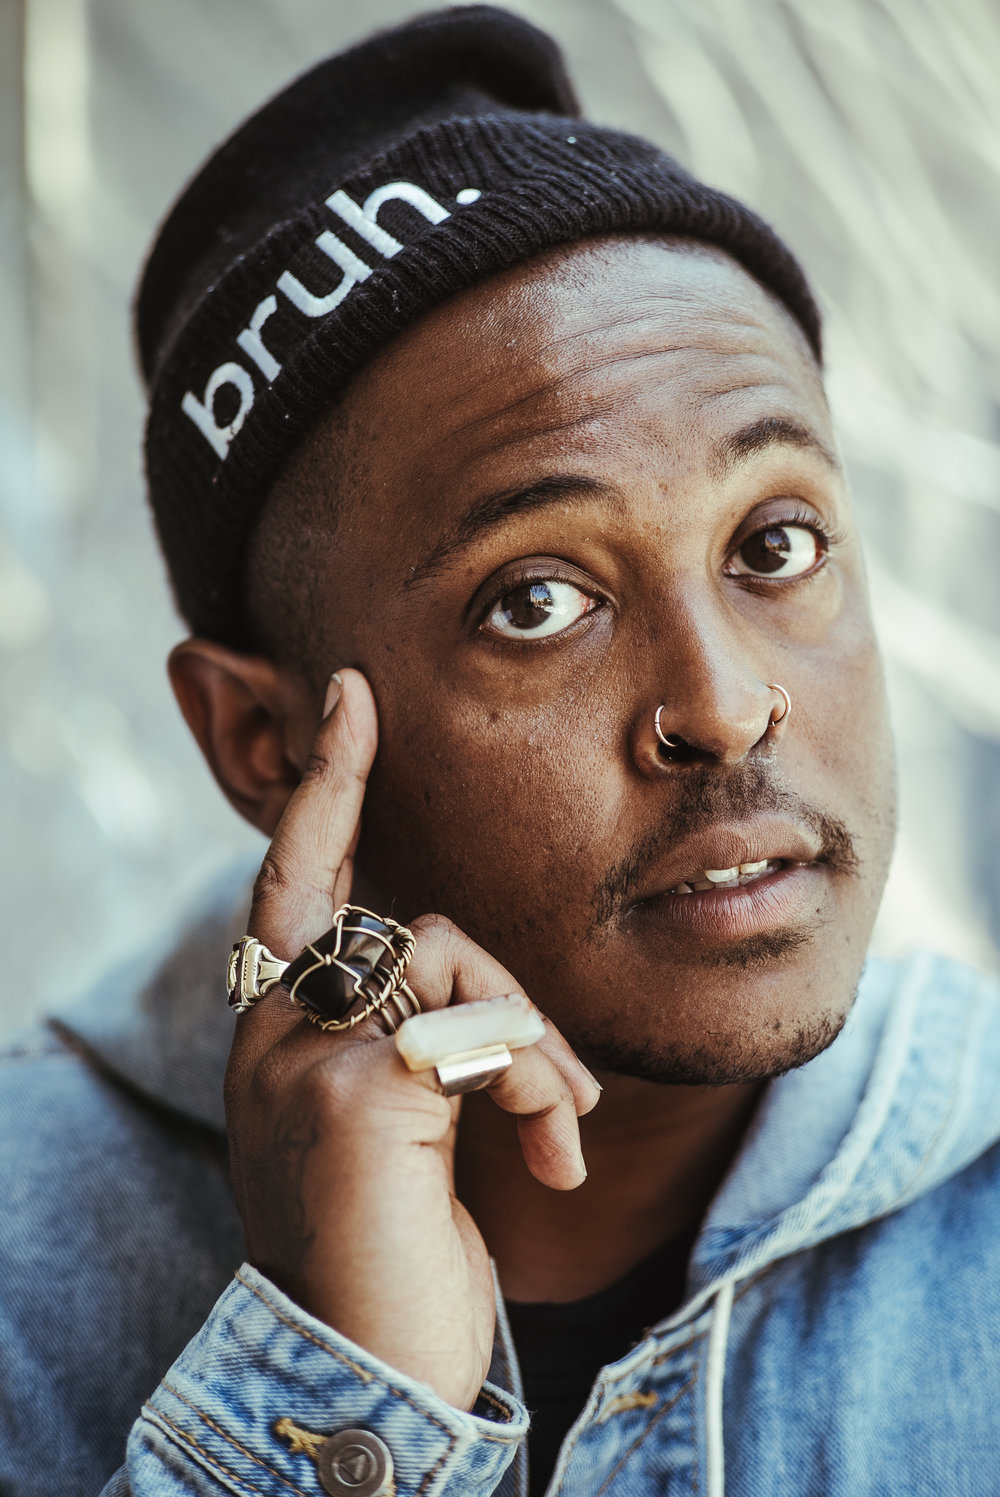 THE GUARDIAN - Danez Smith Becomes Youngest Winner of Forward Poetry Prize